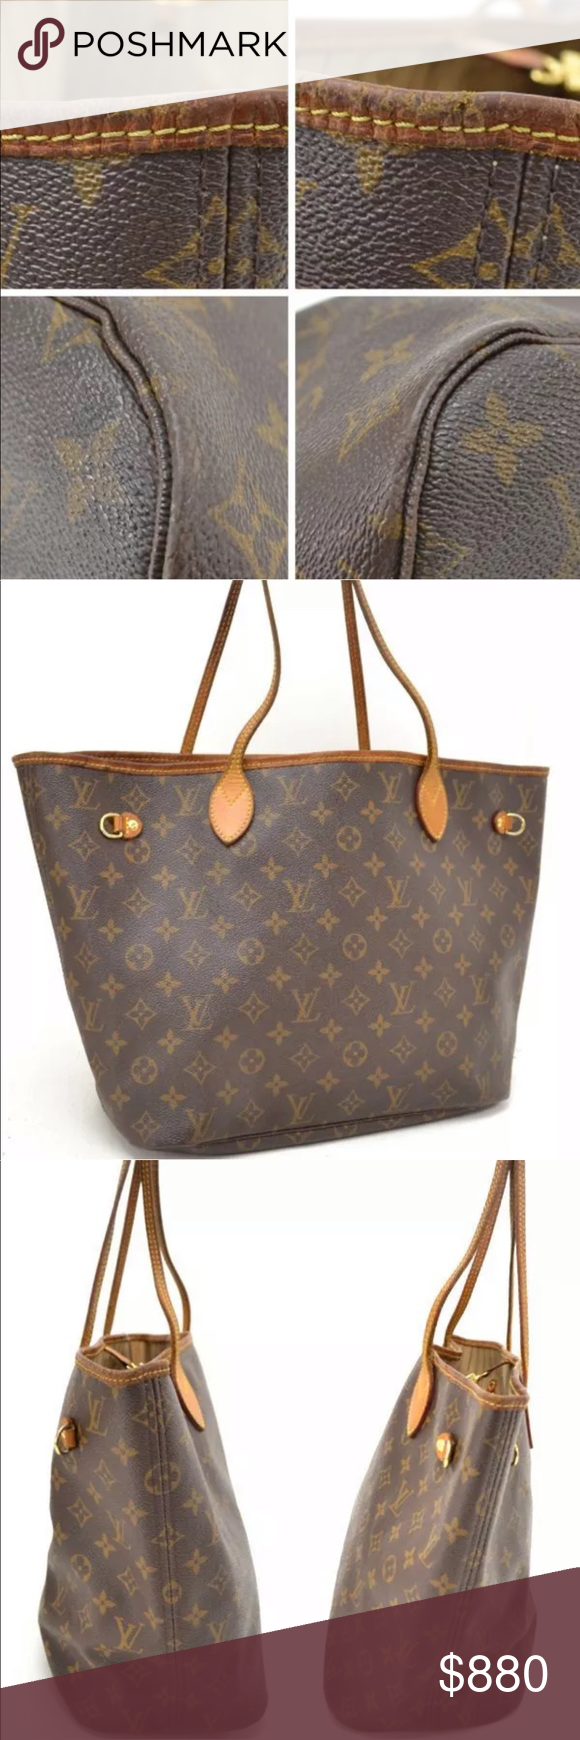 Louis Vuitton Neverfull Mm Tote Bag Brand Name Louis Vuitton Item Name Neverfull Mm Product No M40156 Date C Louis Vuitton Neverfull Mm Tote Bag Louis Vuitton